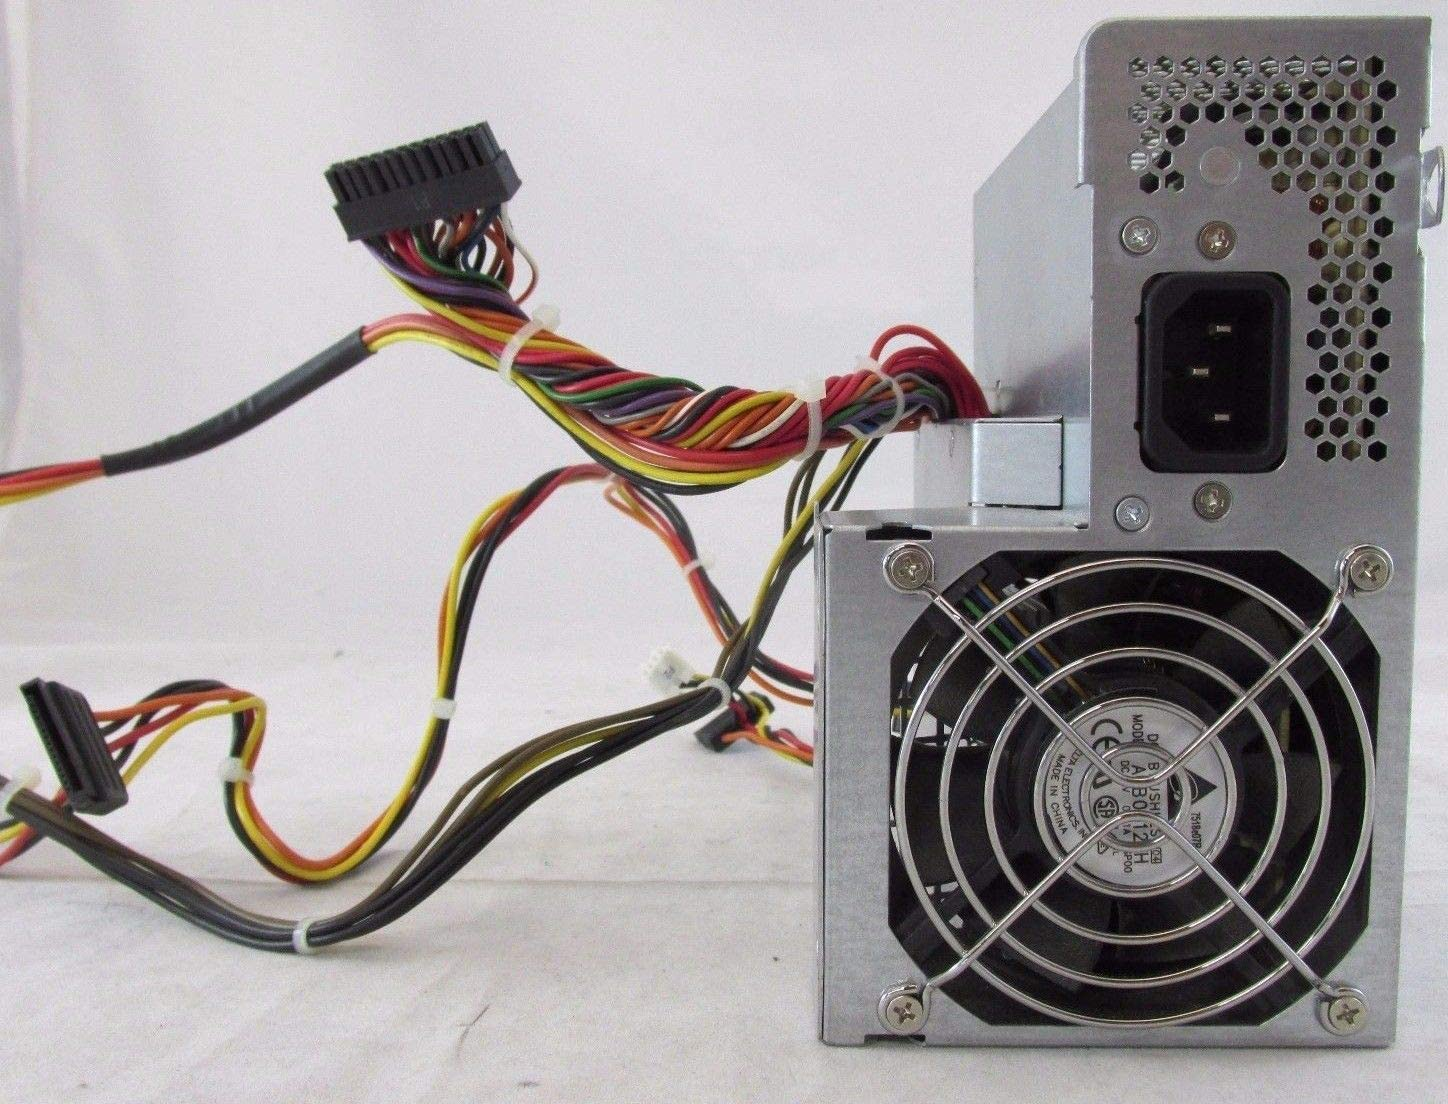 403985-001 HP DC7700S 240W 6OUTPUT POWER SUPPLY